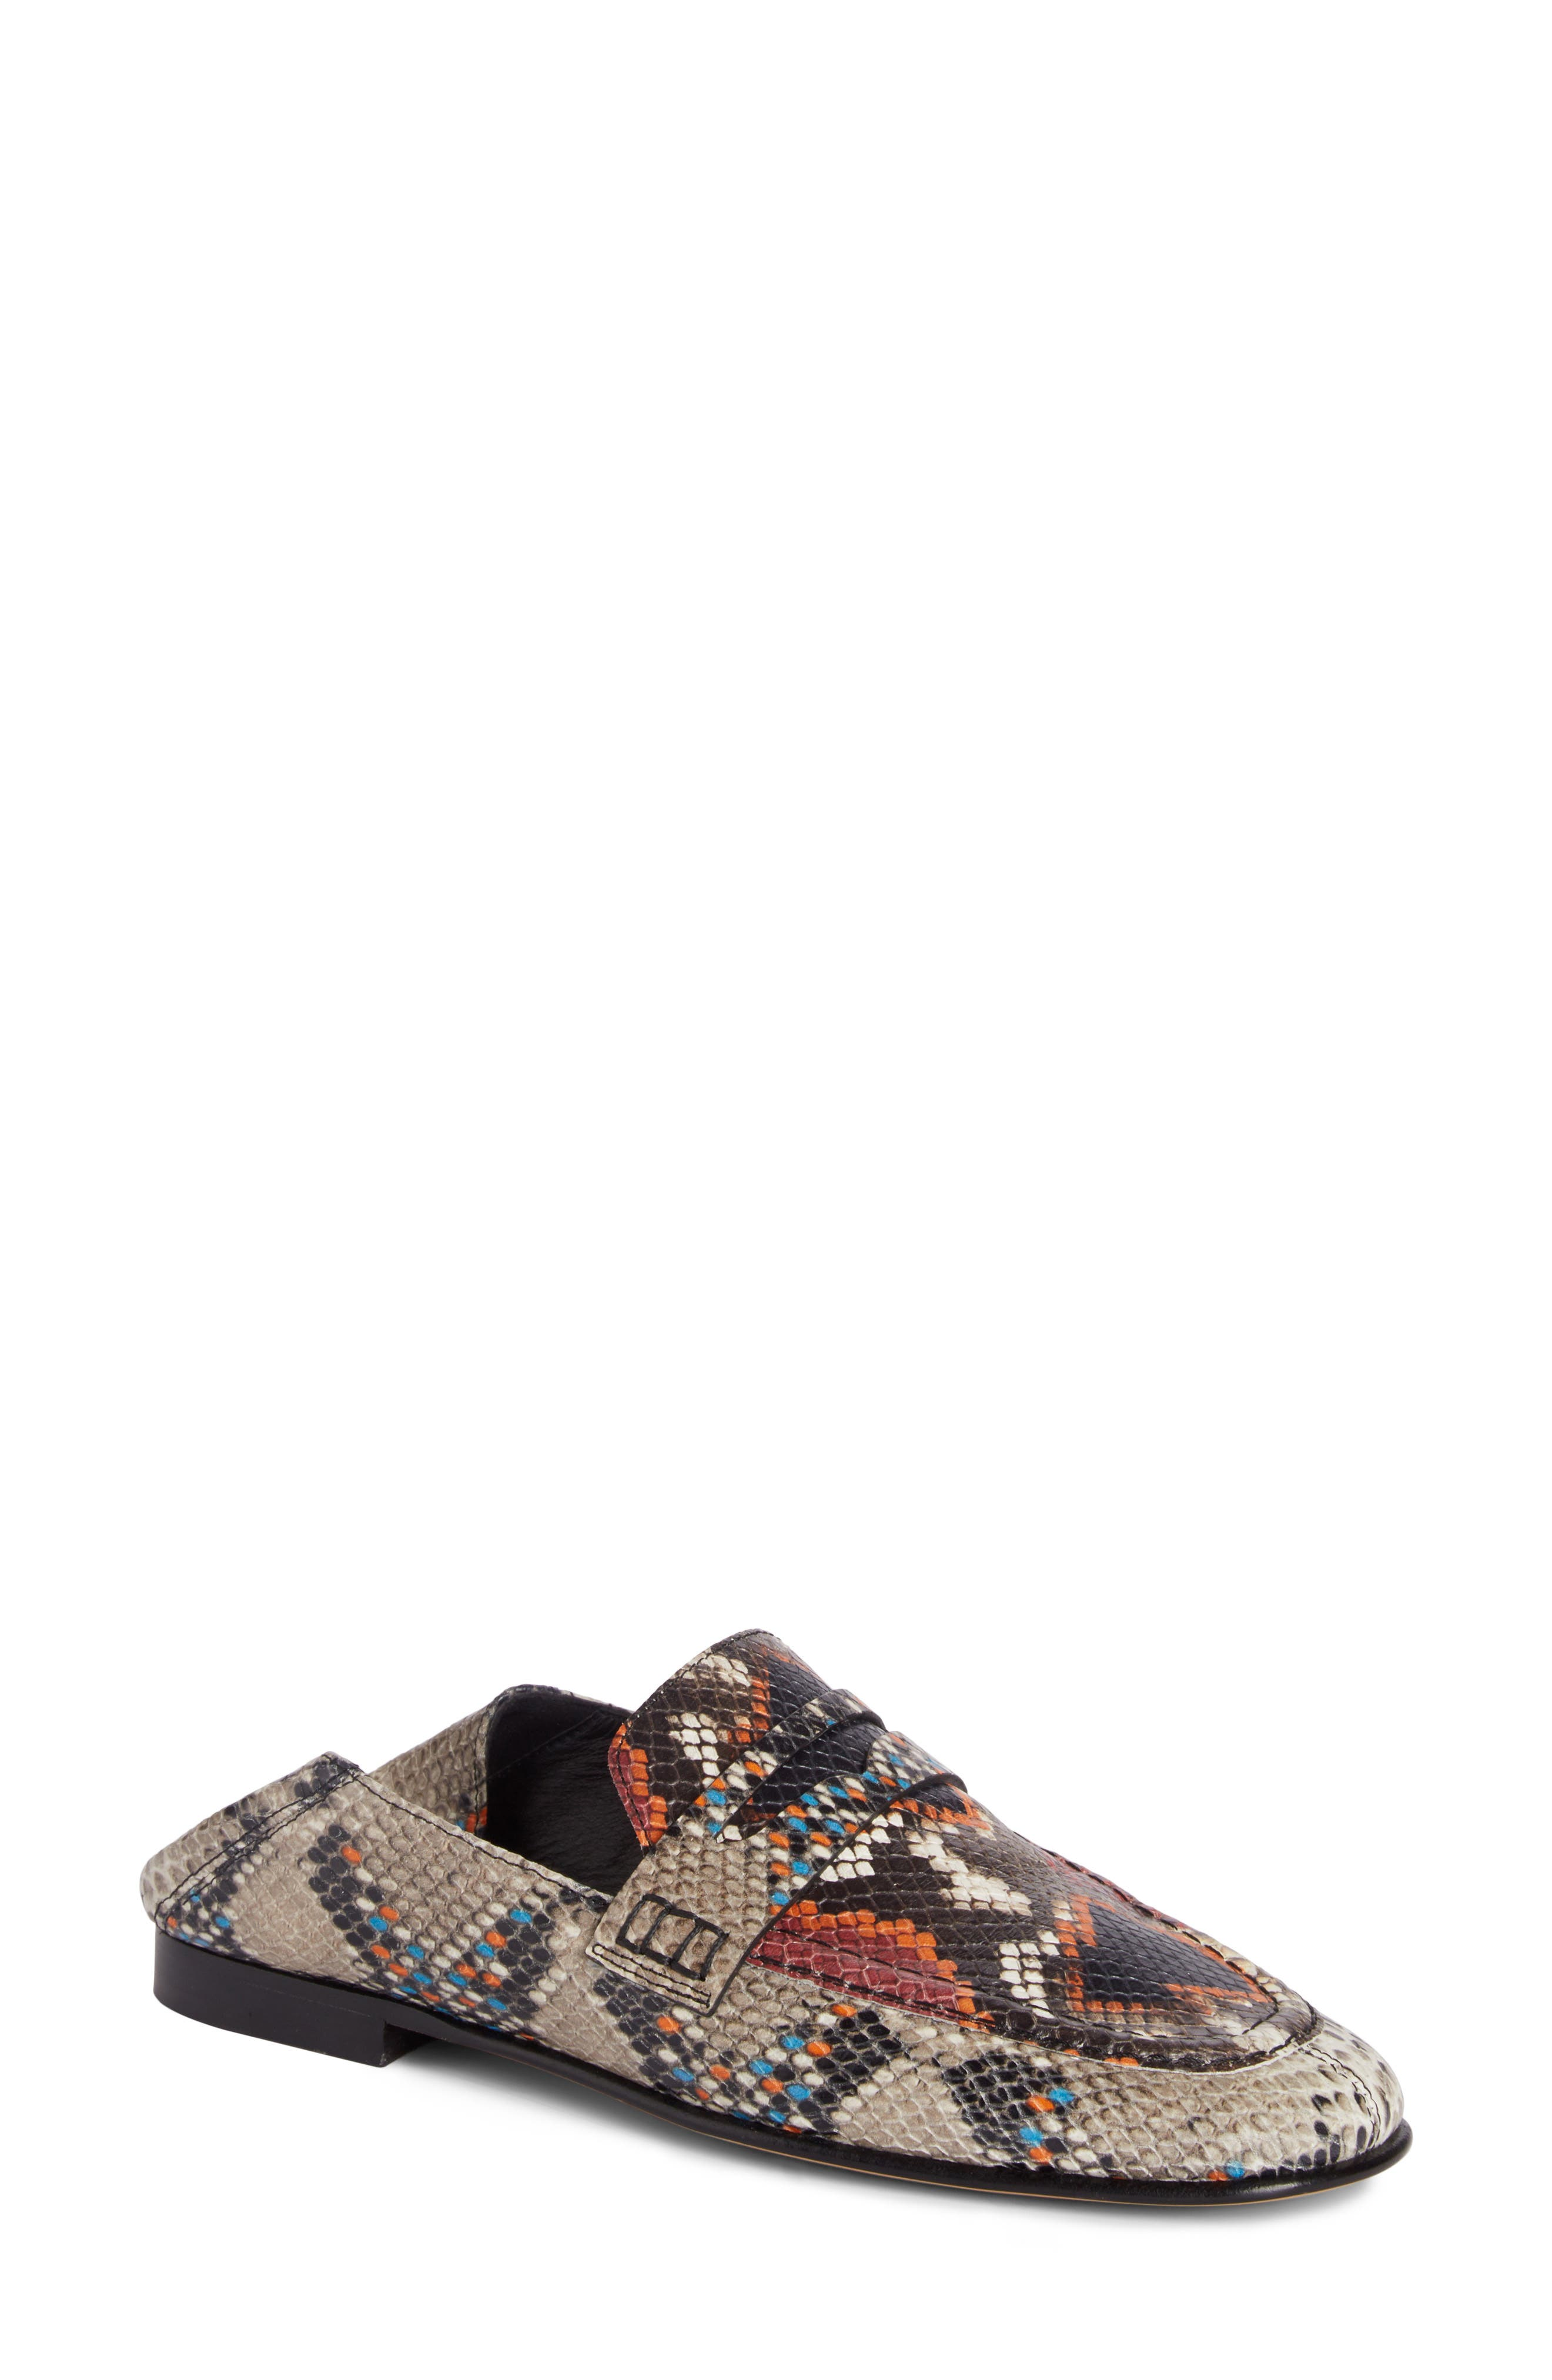 Isabel Marant Fezzy Snakeskin Embossed Convertible Loafer (Women)